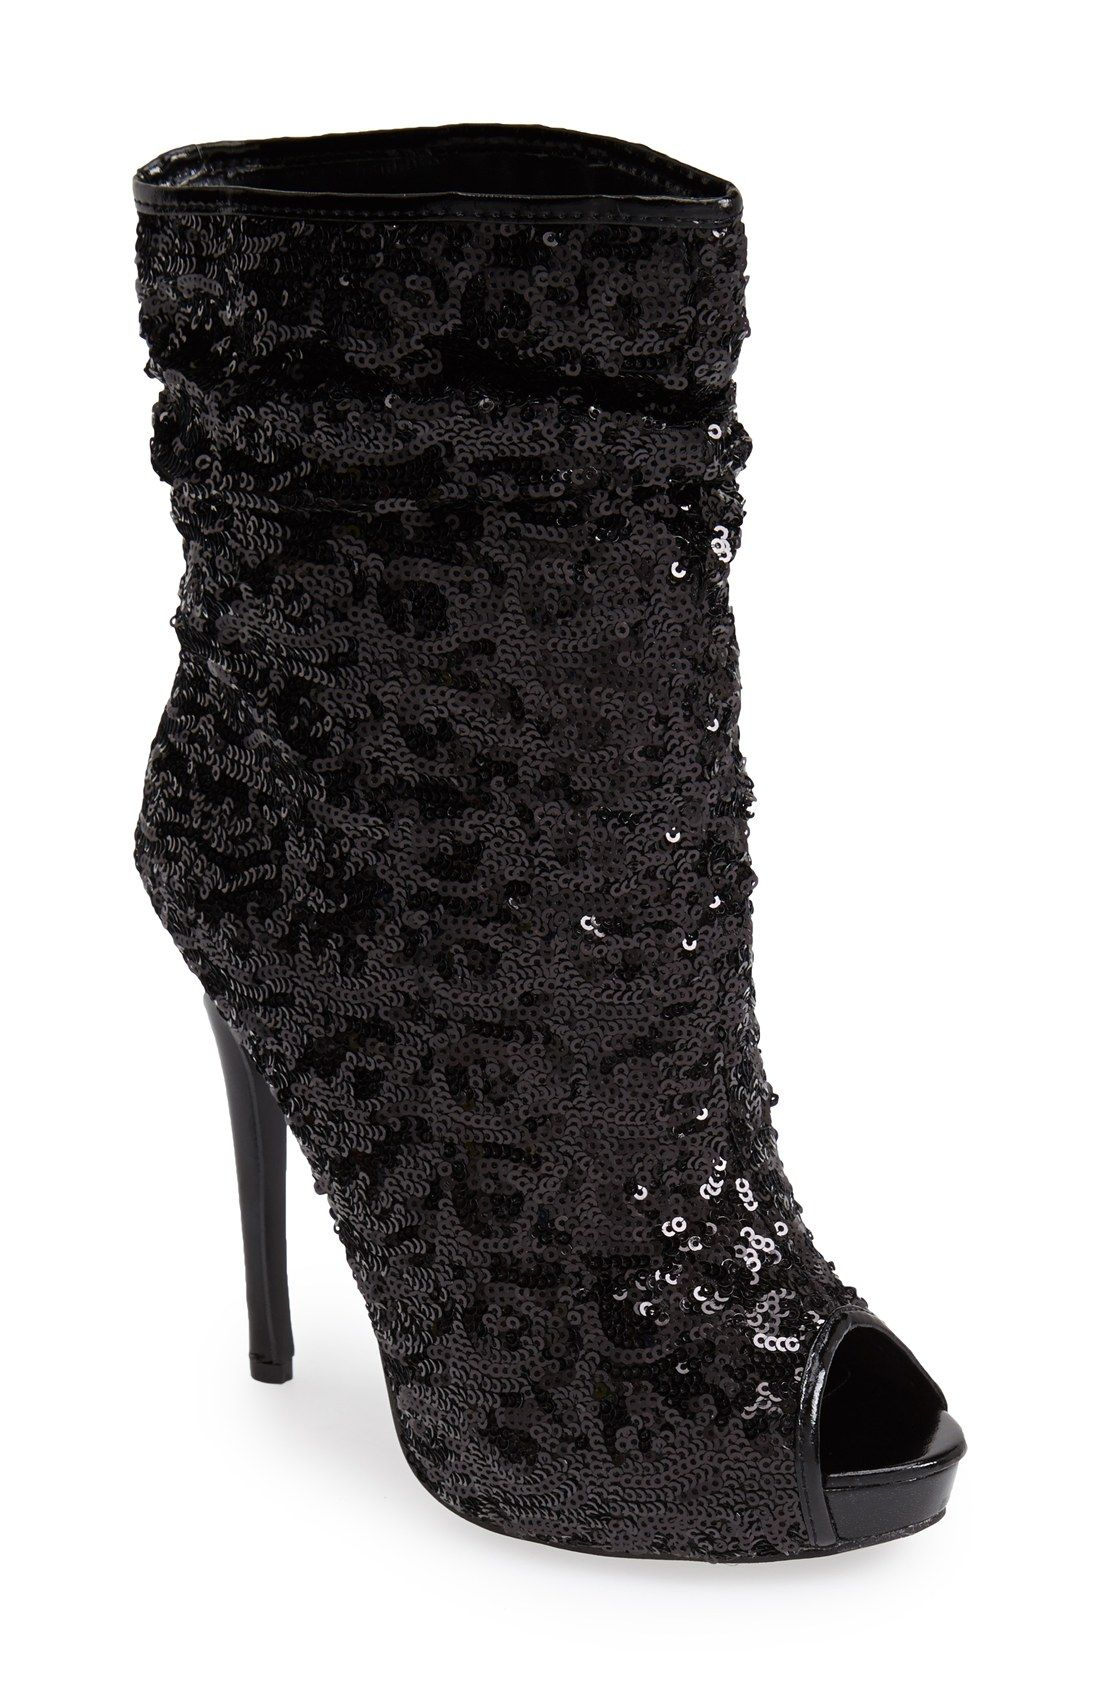 bfa7a49a3328 Excited to show off these black sequin peep toe booties!